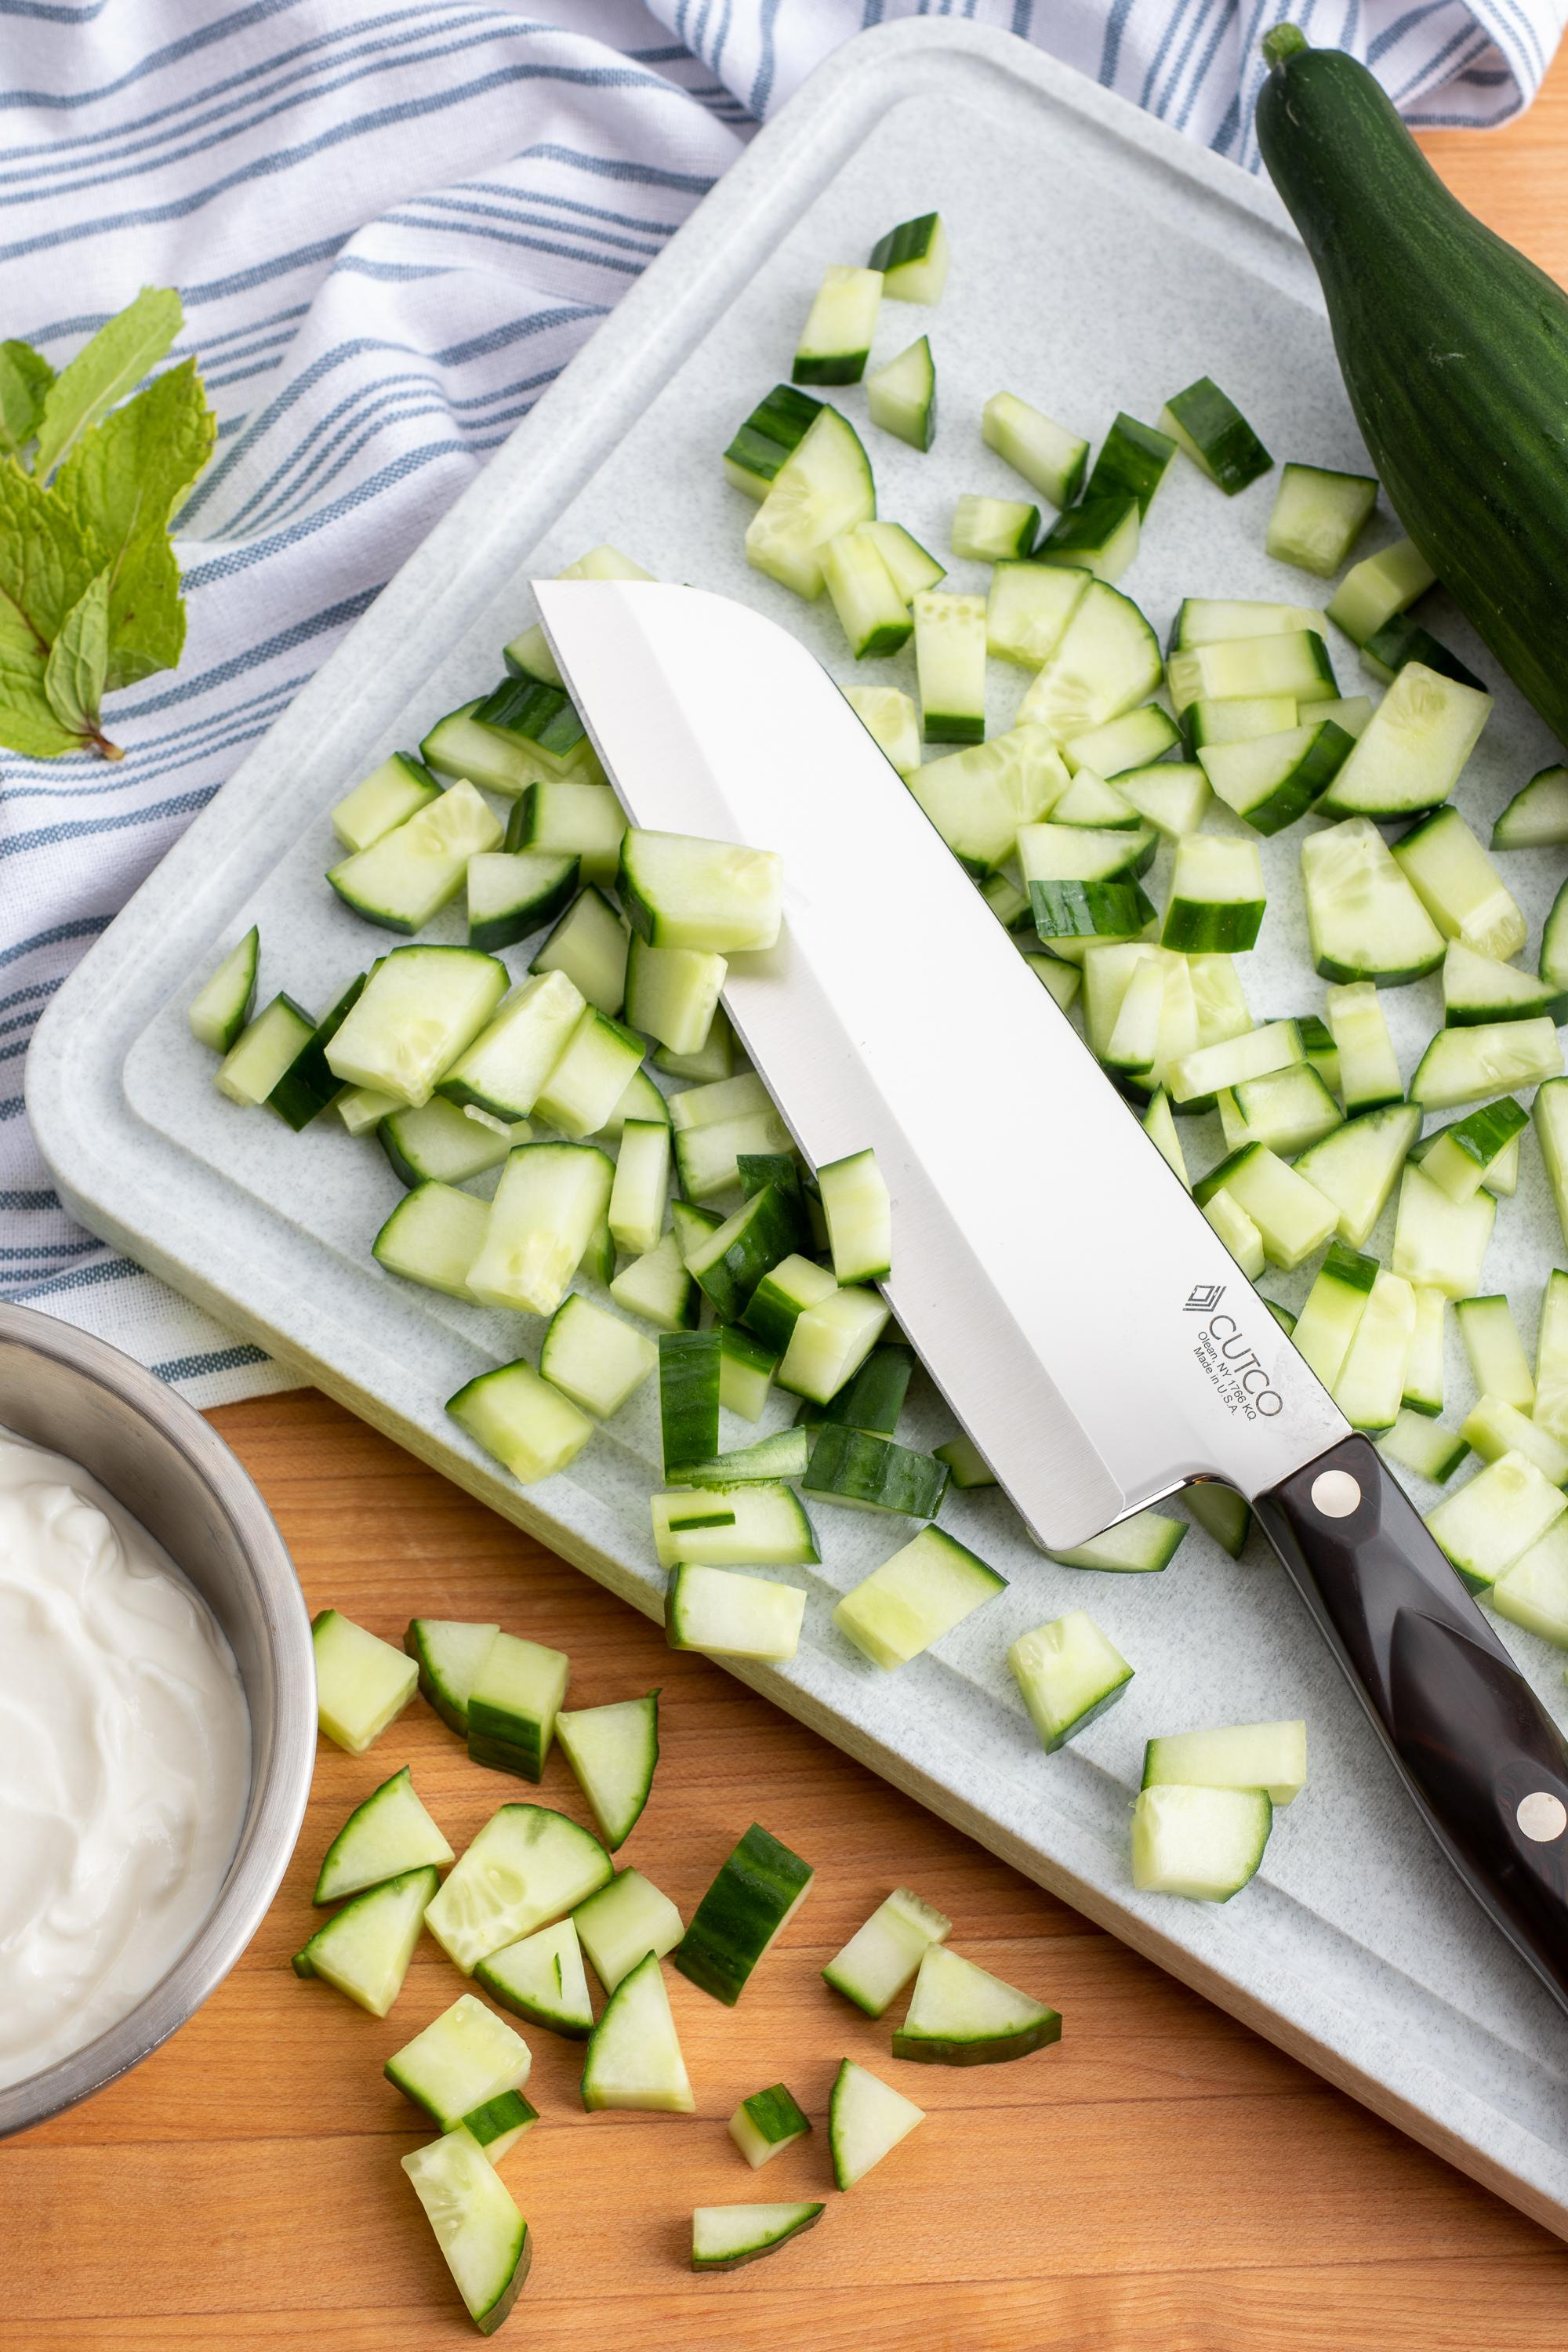 Diced up Cucumber with a 7 Inch Santoku.